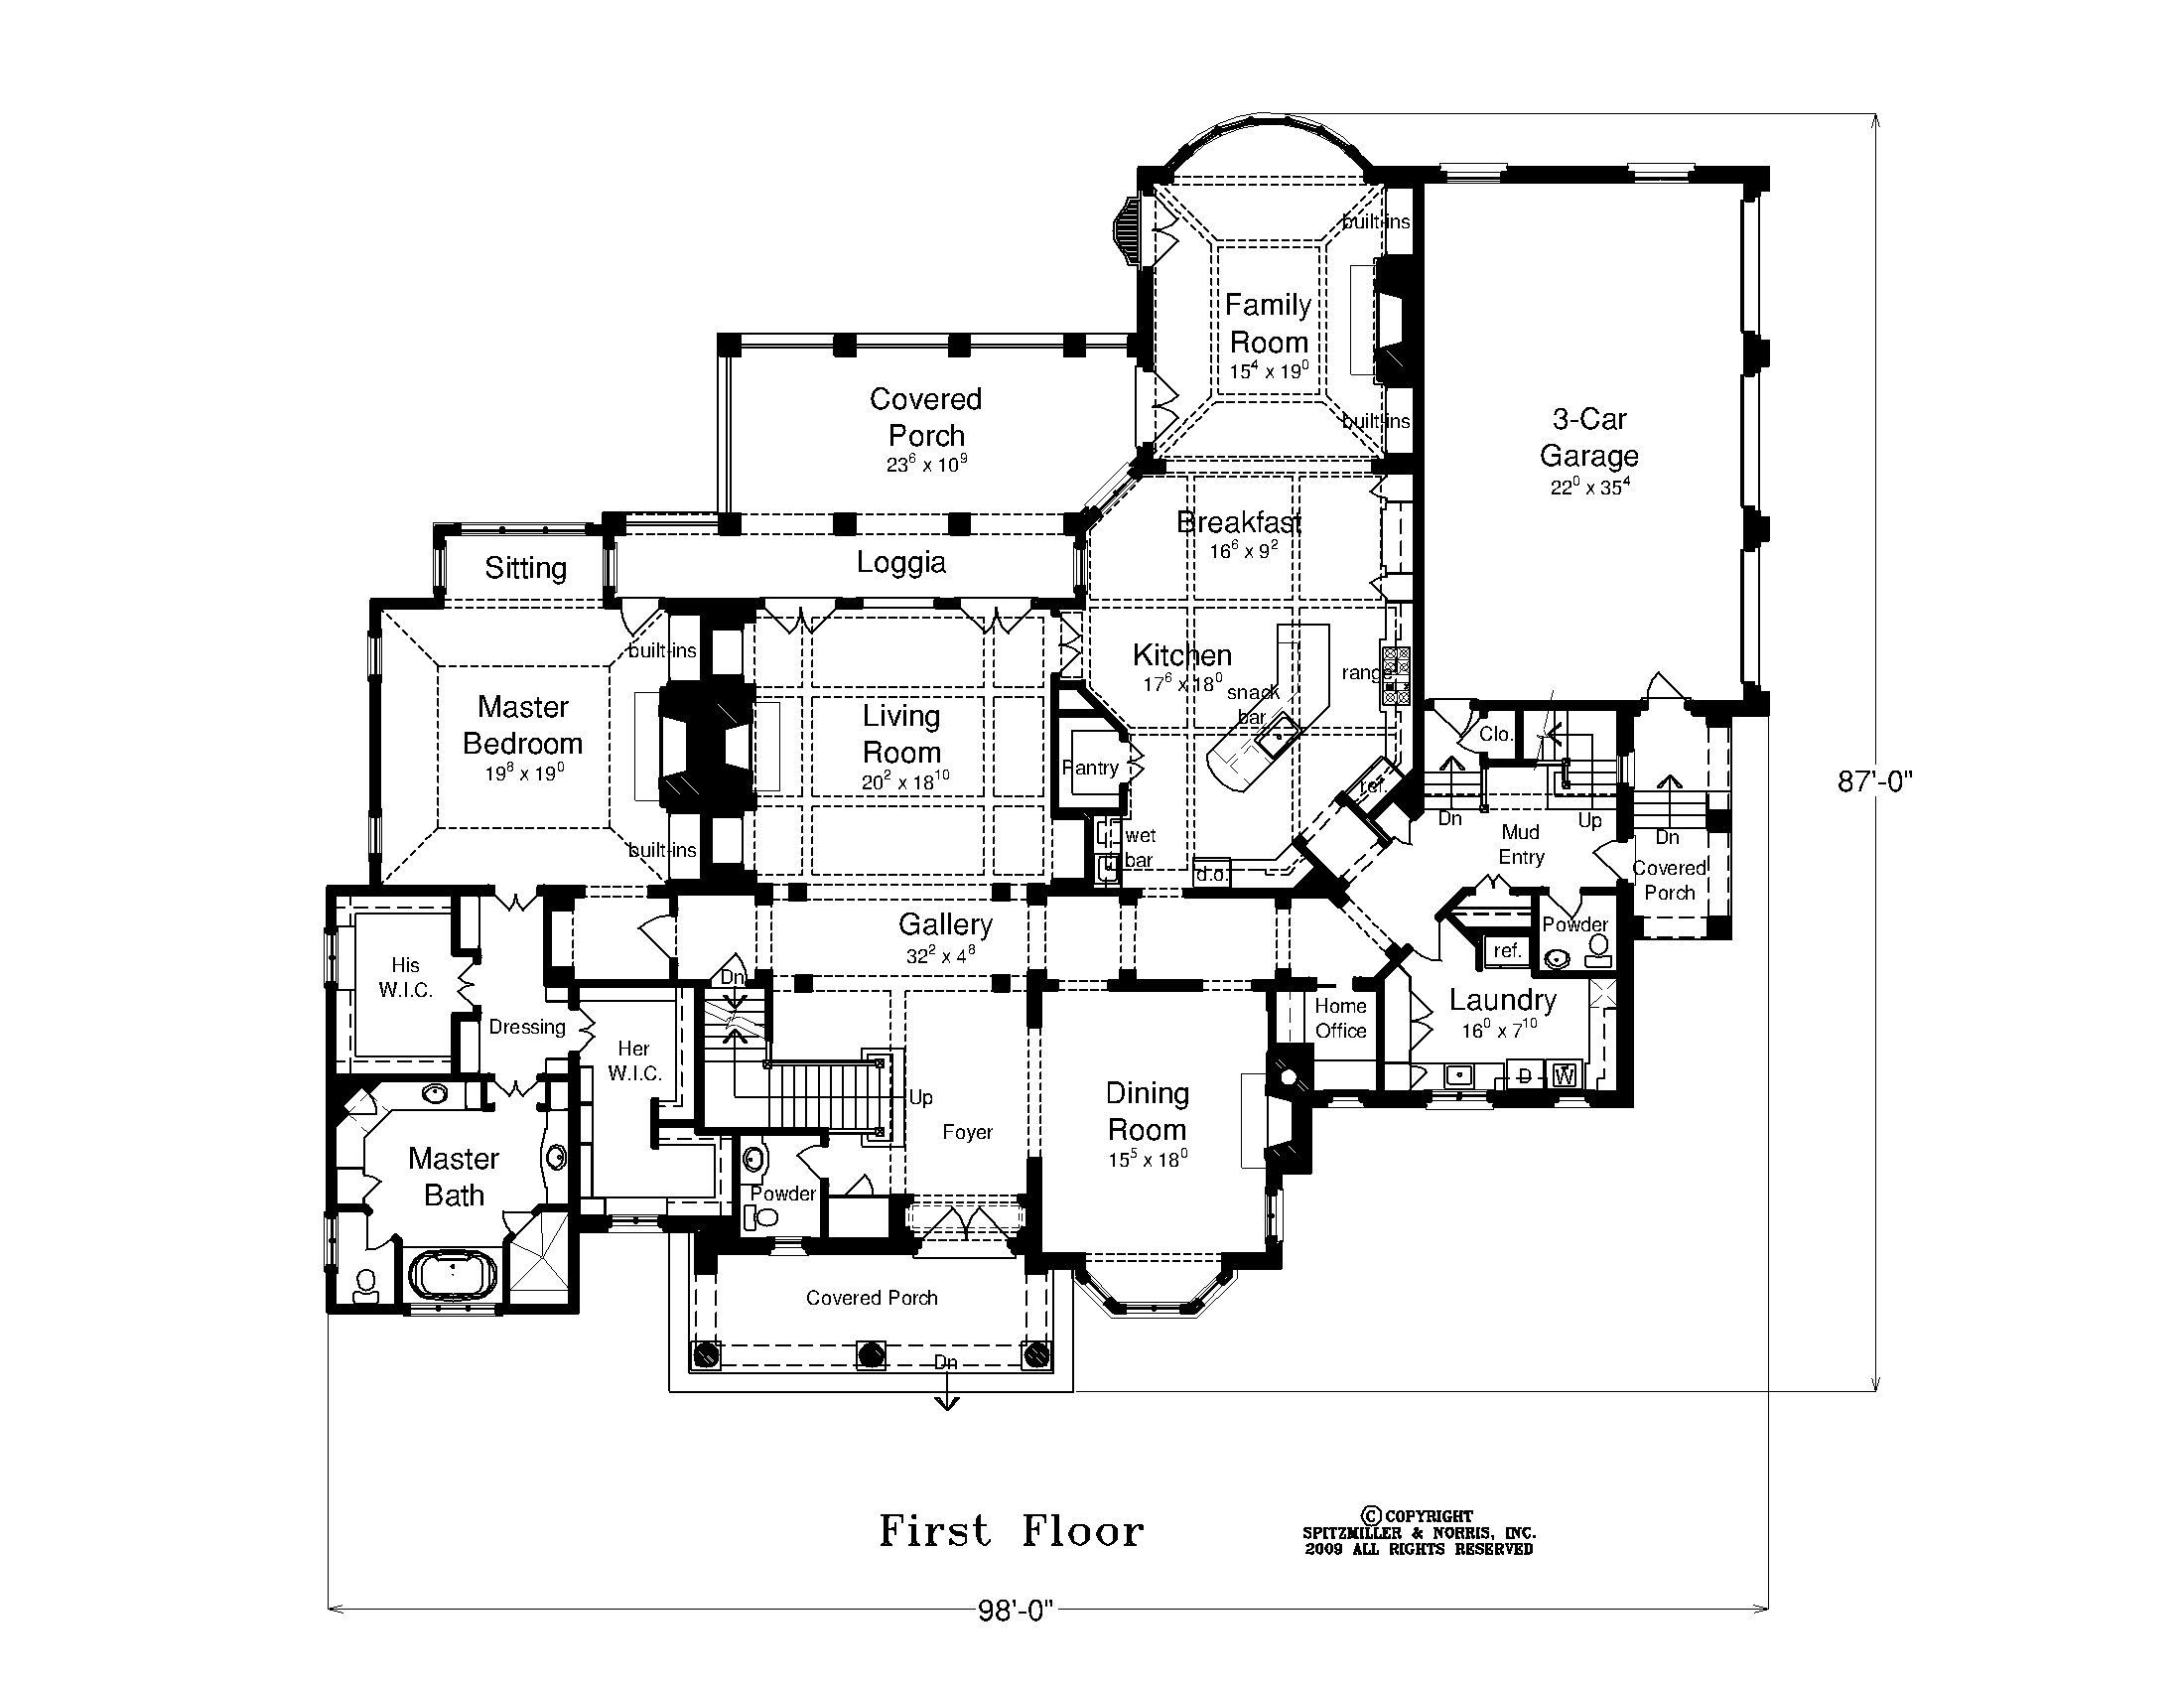 Hudson Valley House First Floor Plan